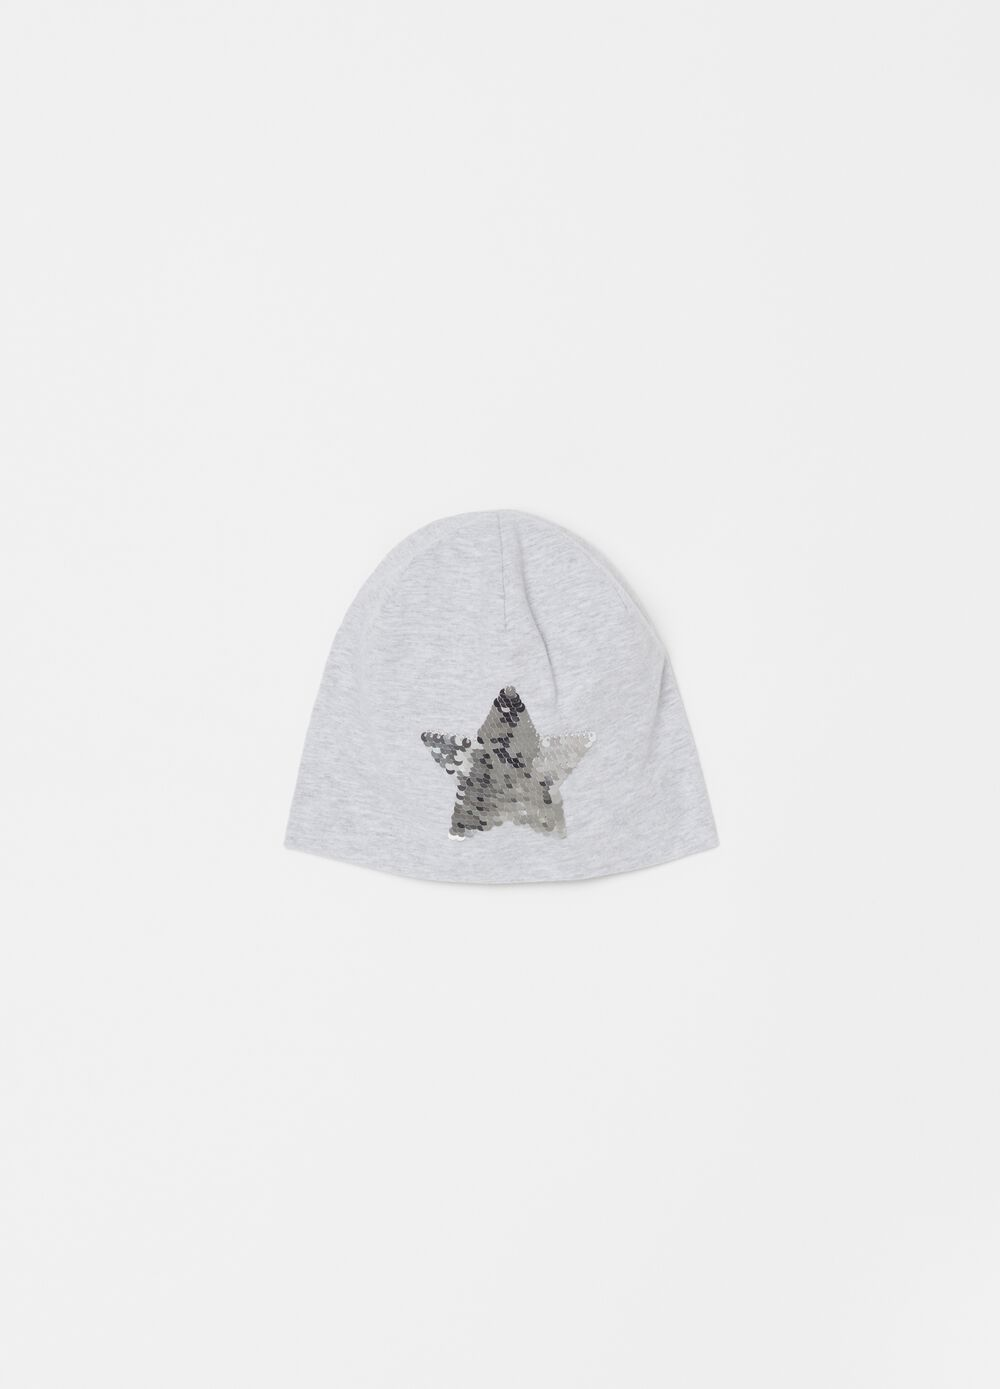 Hat with star motif sequins